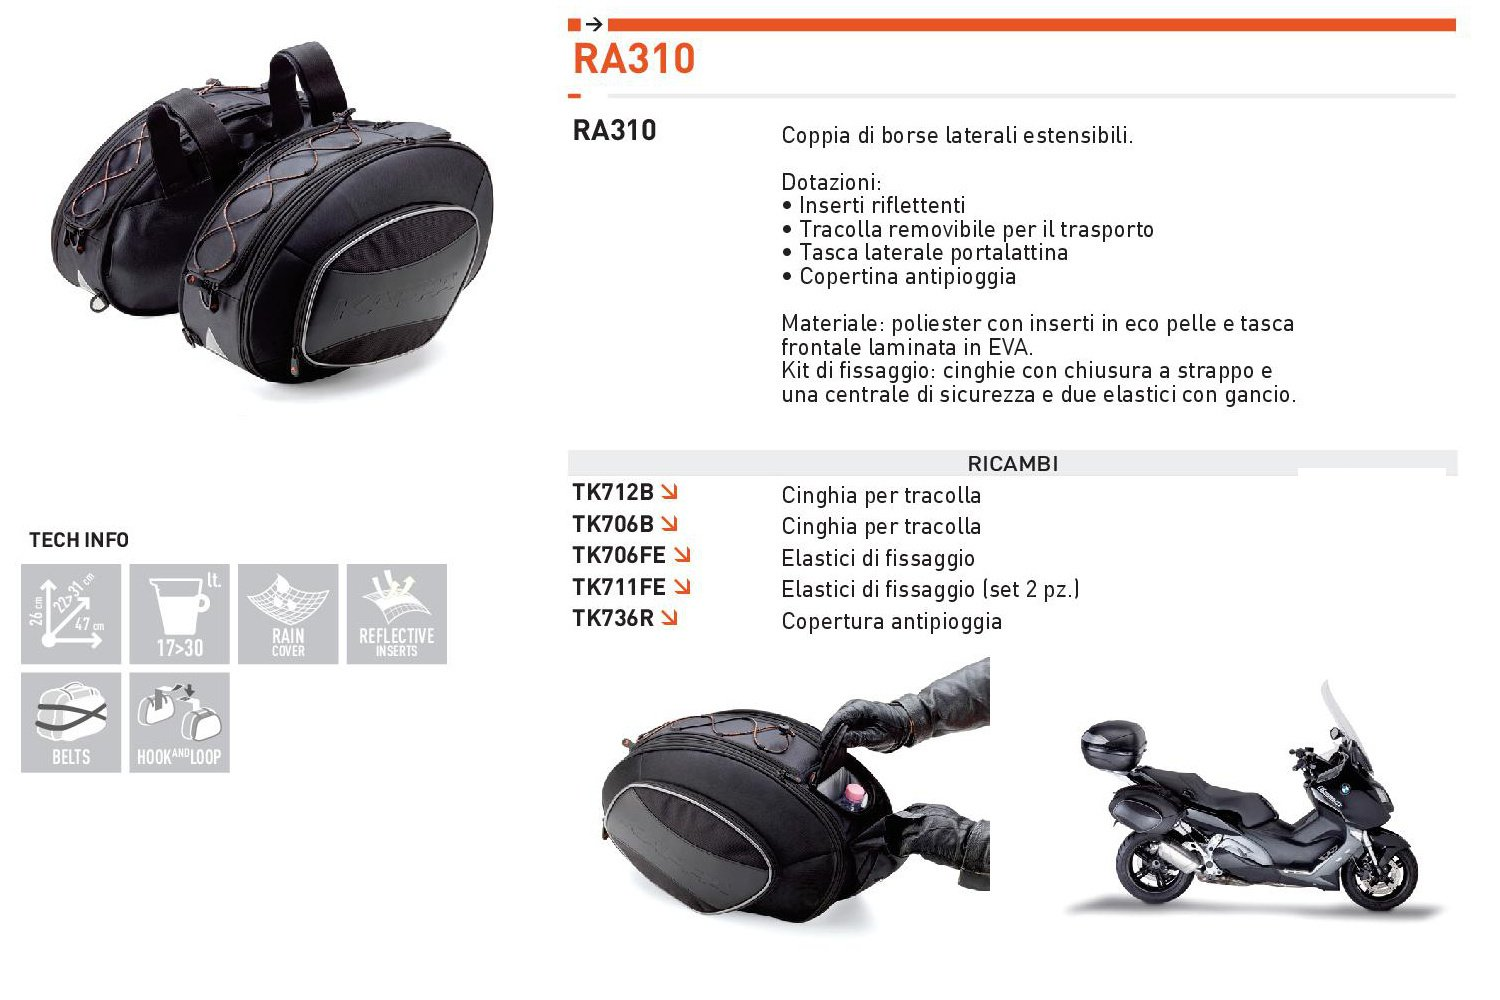 a80b5613c0 Kappa RA310 Borse Laterali, Set di 2: Amazon.it: Auto e Moto